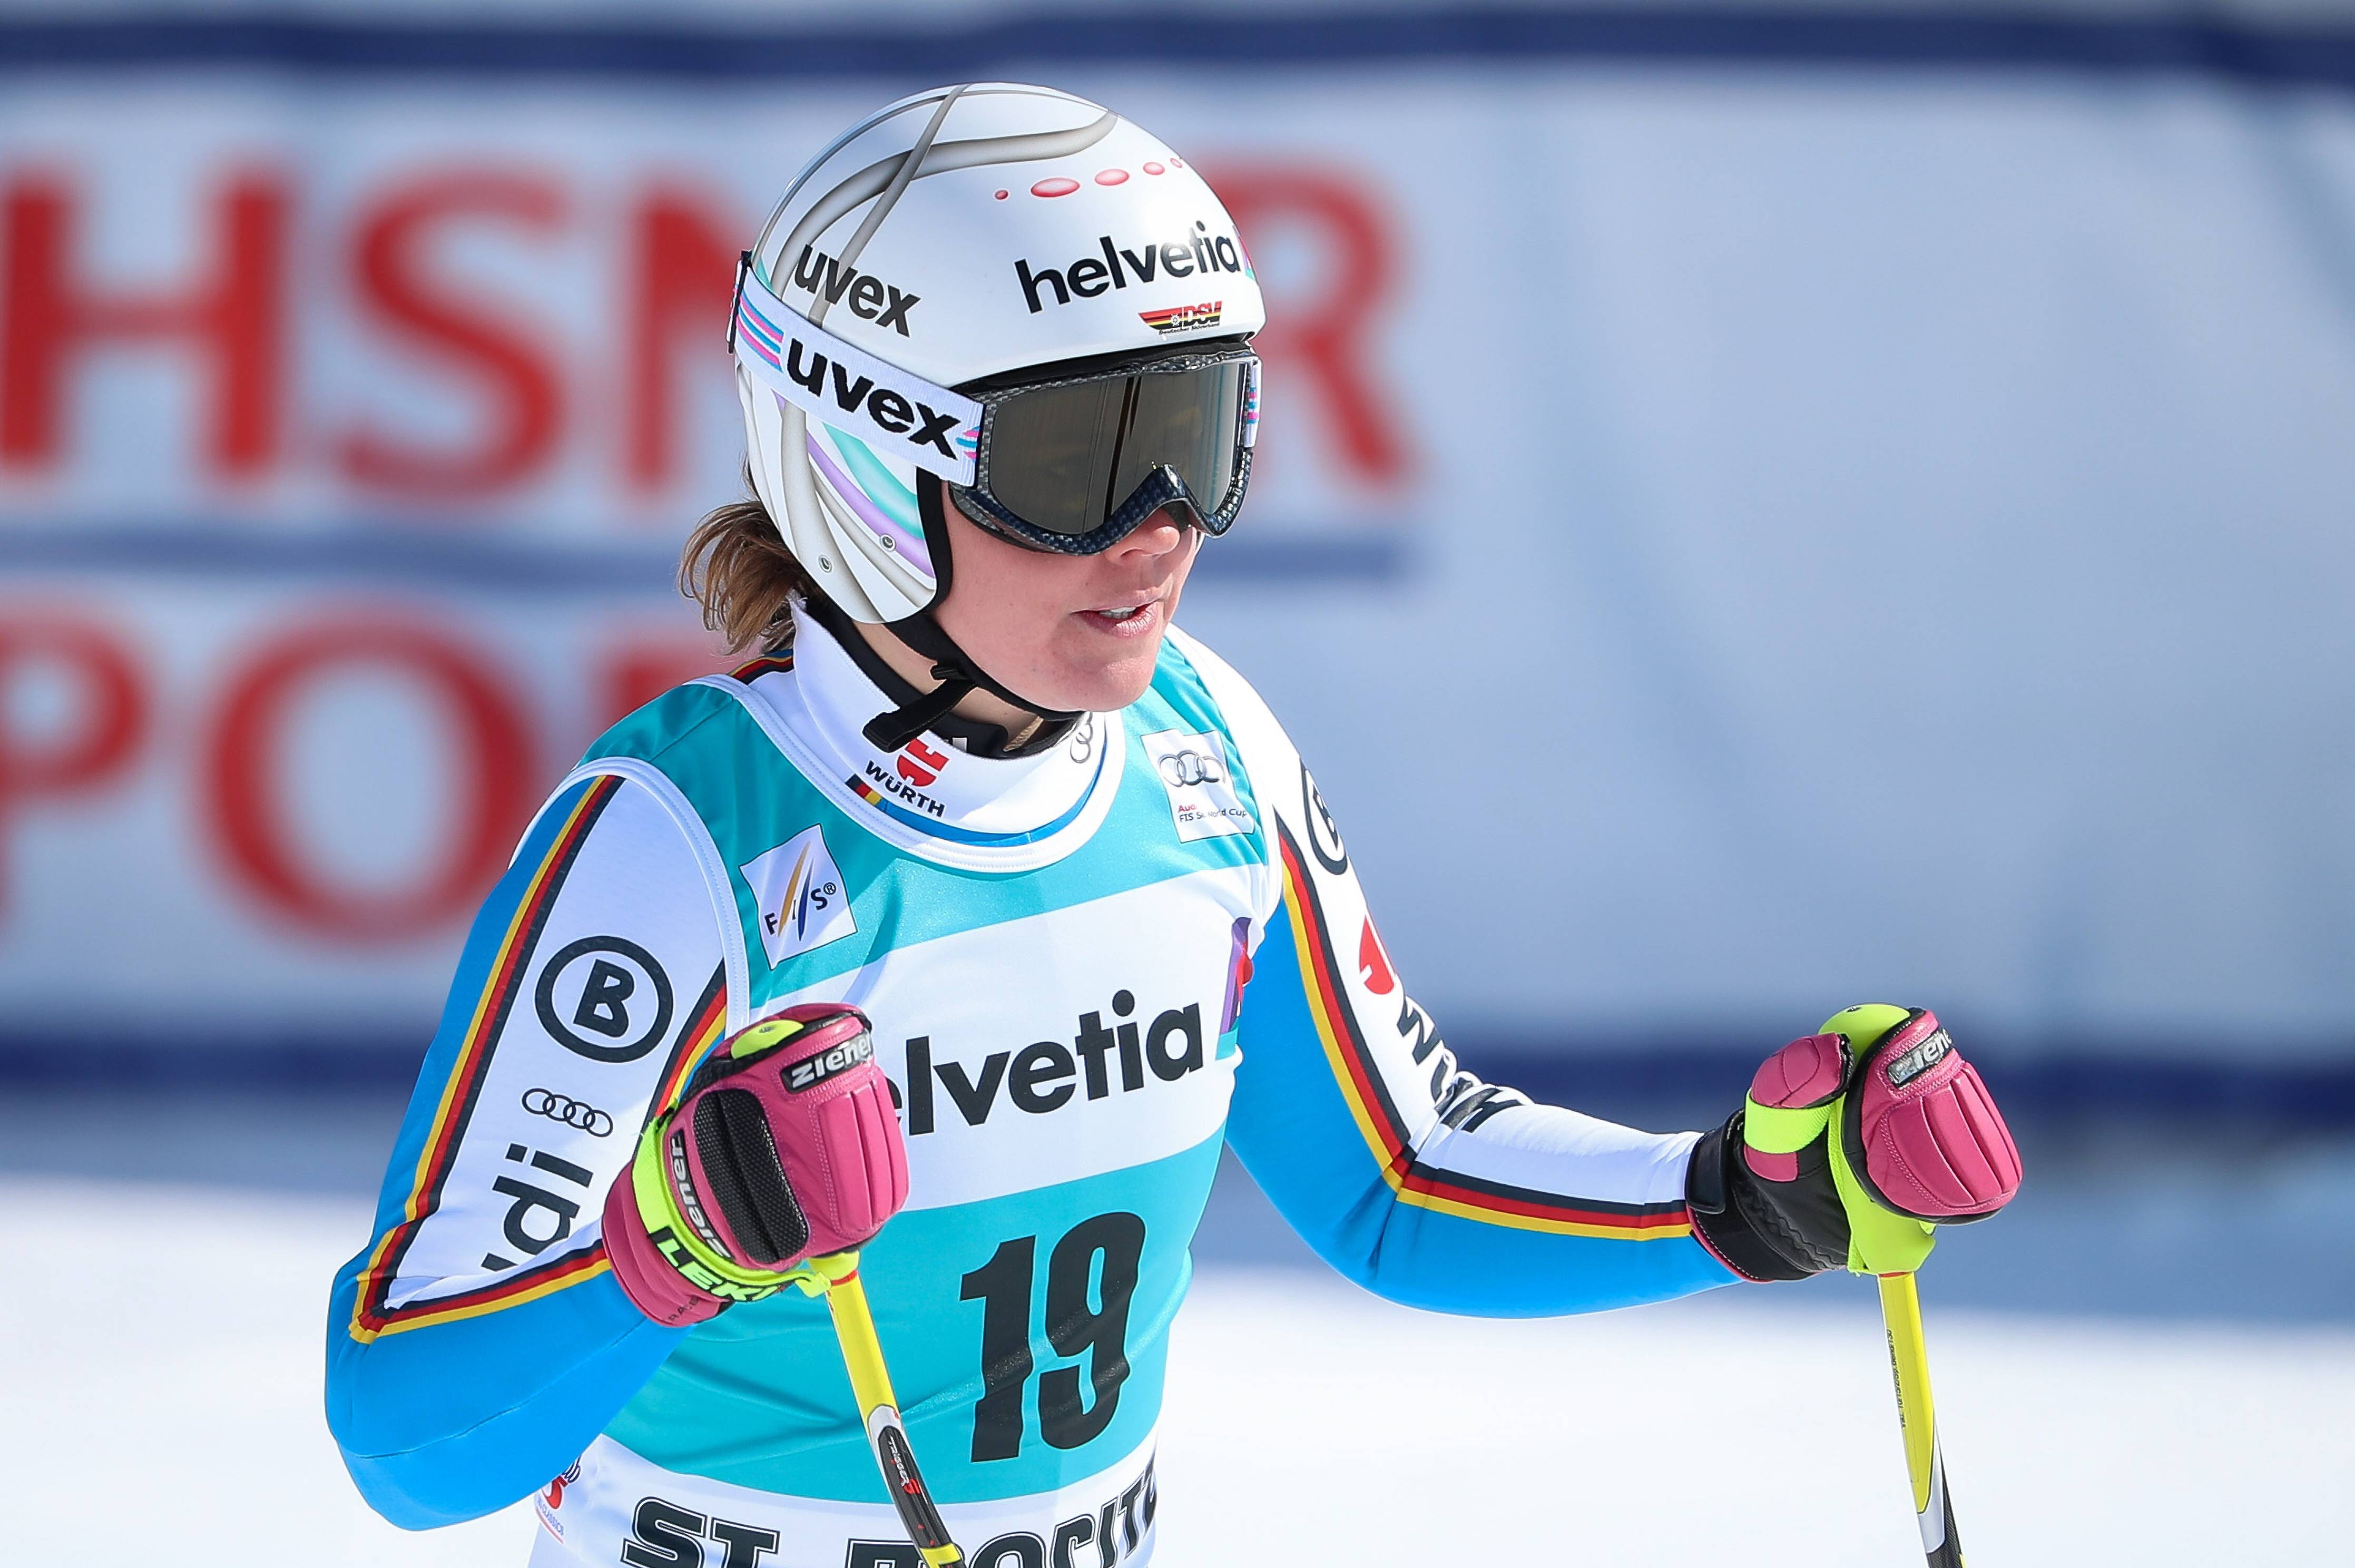 St. Moritz: 6th Place In The Super-G